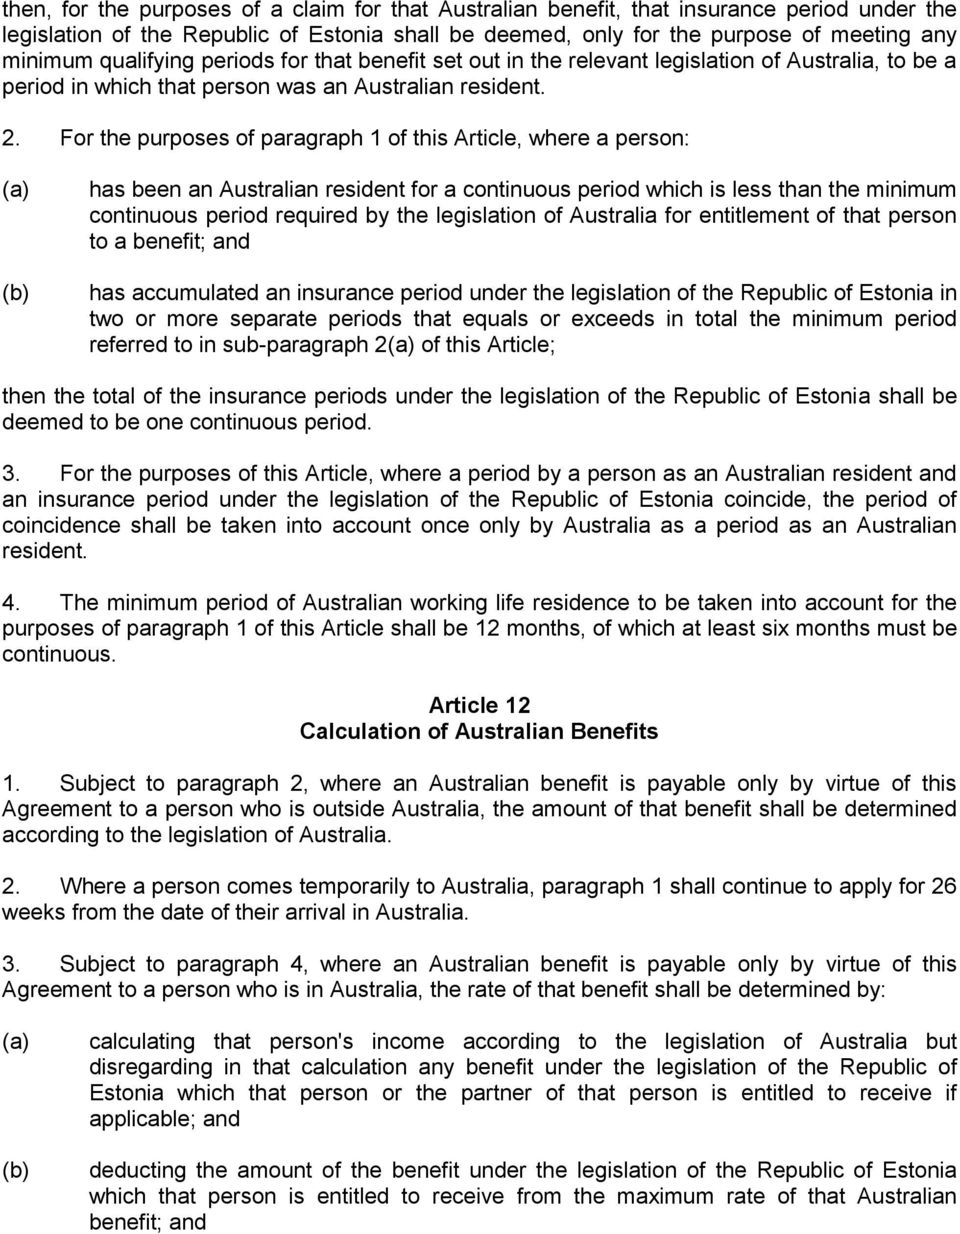 For the purposes of paragraph 1 of this Article, where a person: has been an Australian resident for a continuous period which is less than the minimum continuous period required by the legislation